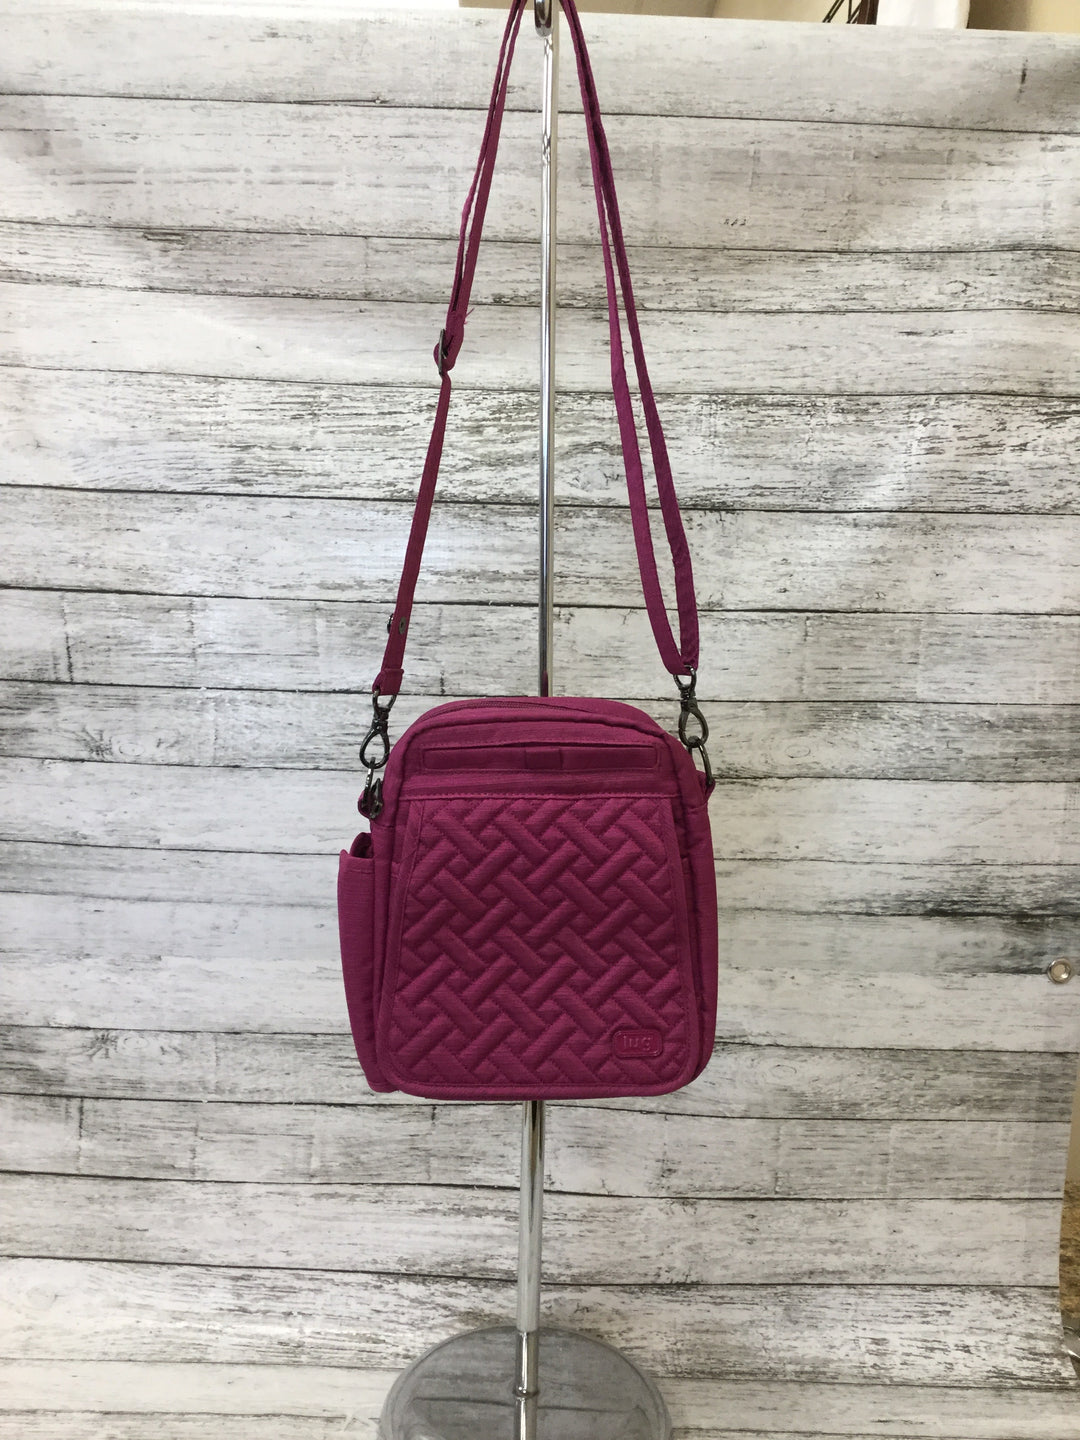 Primary Photo - BRAND:   CMC <BR>STYLE: CROSSBODY <BR>COLOR: RASPBERRY <BR>SIZE: SMALL <BR>OTHER INFO: LUG - HAS TWO STRAPS <BR>SKU: 125-4893-4508